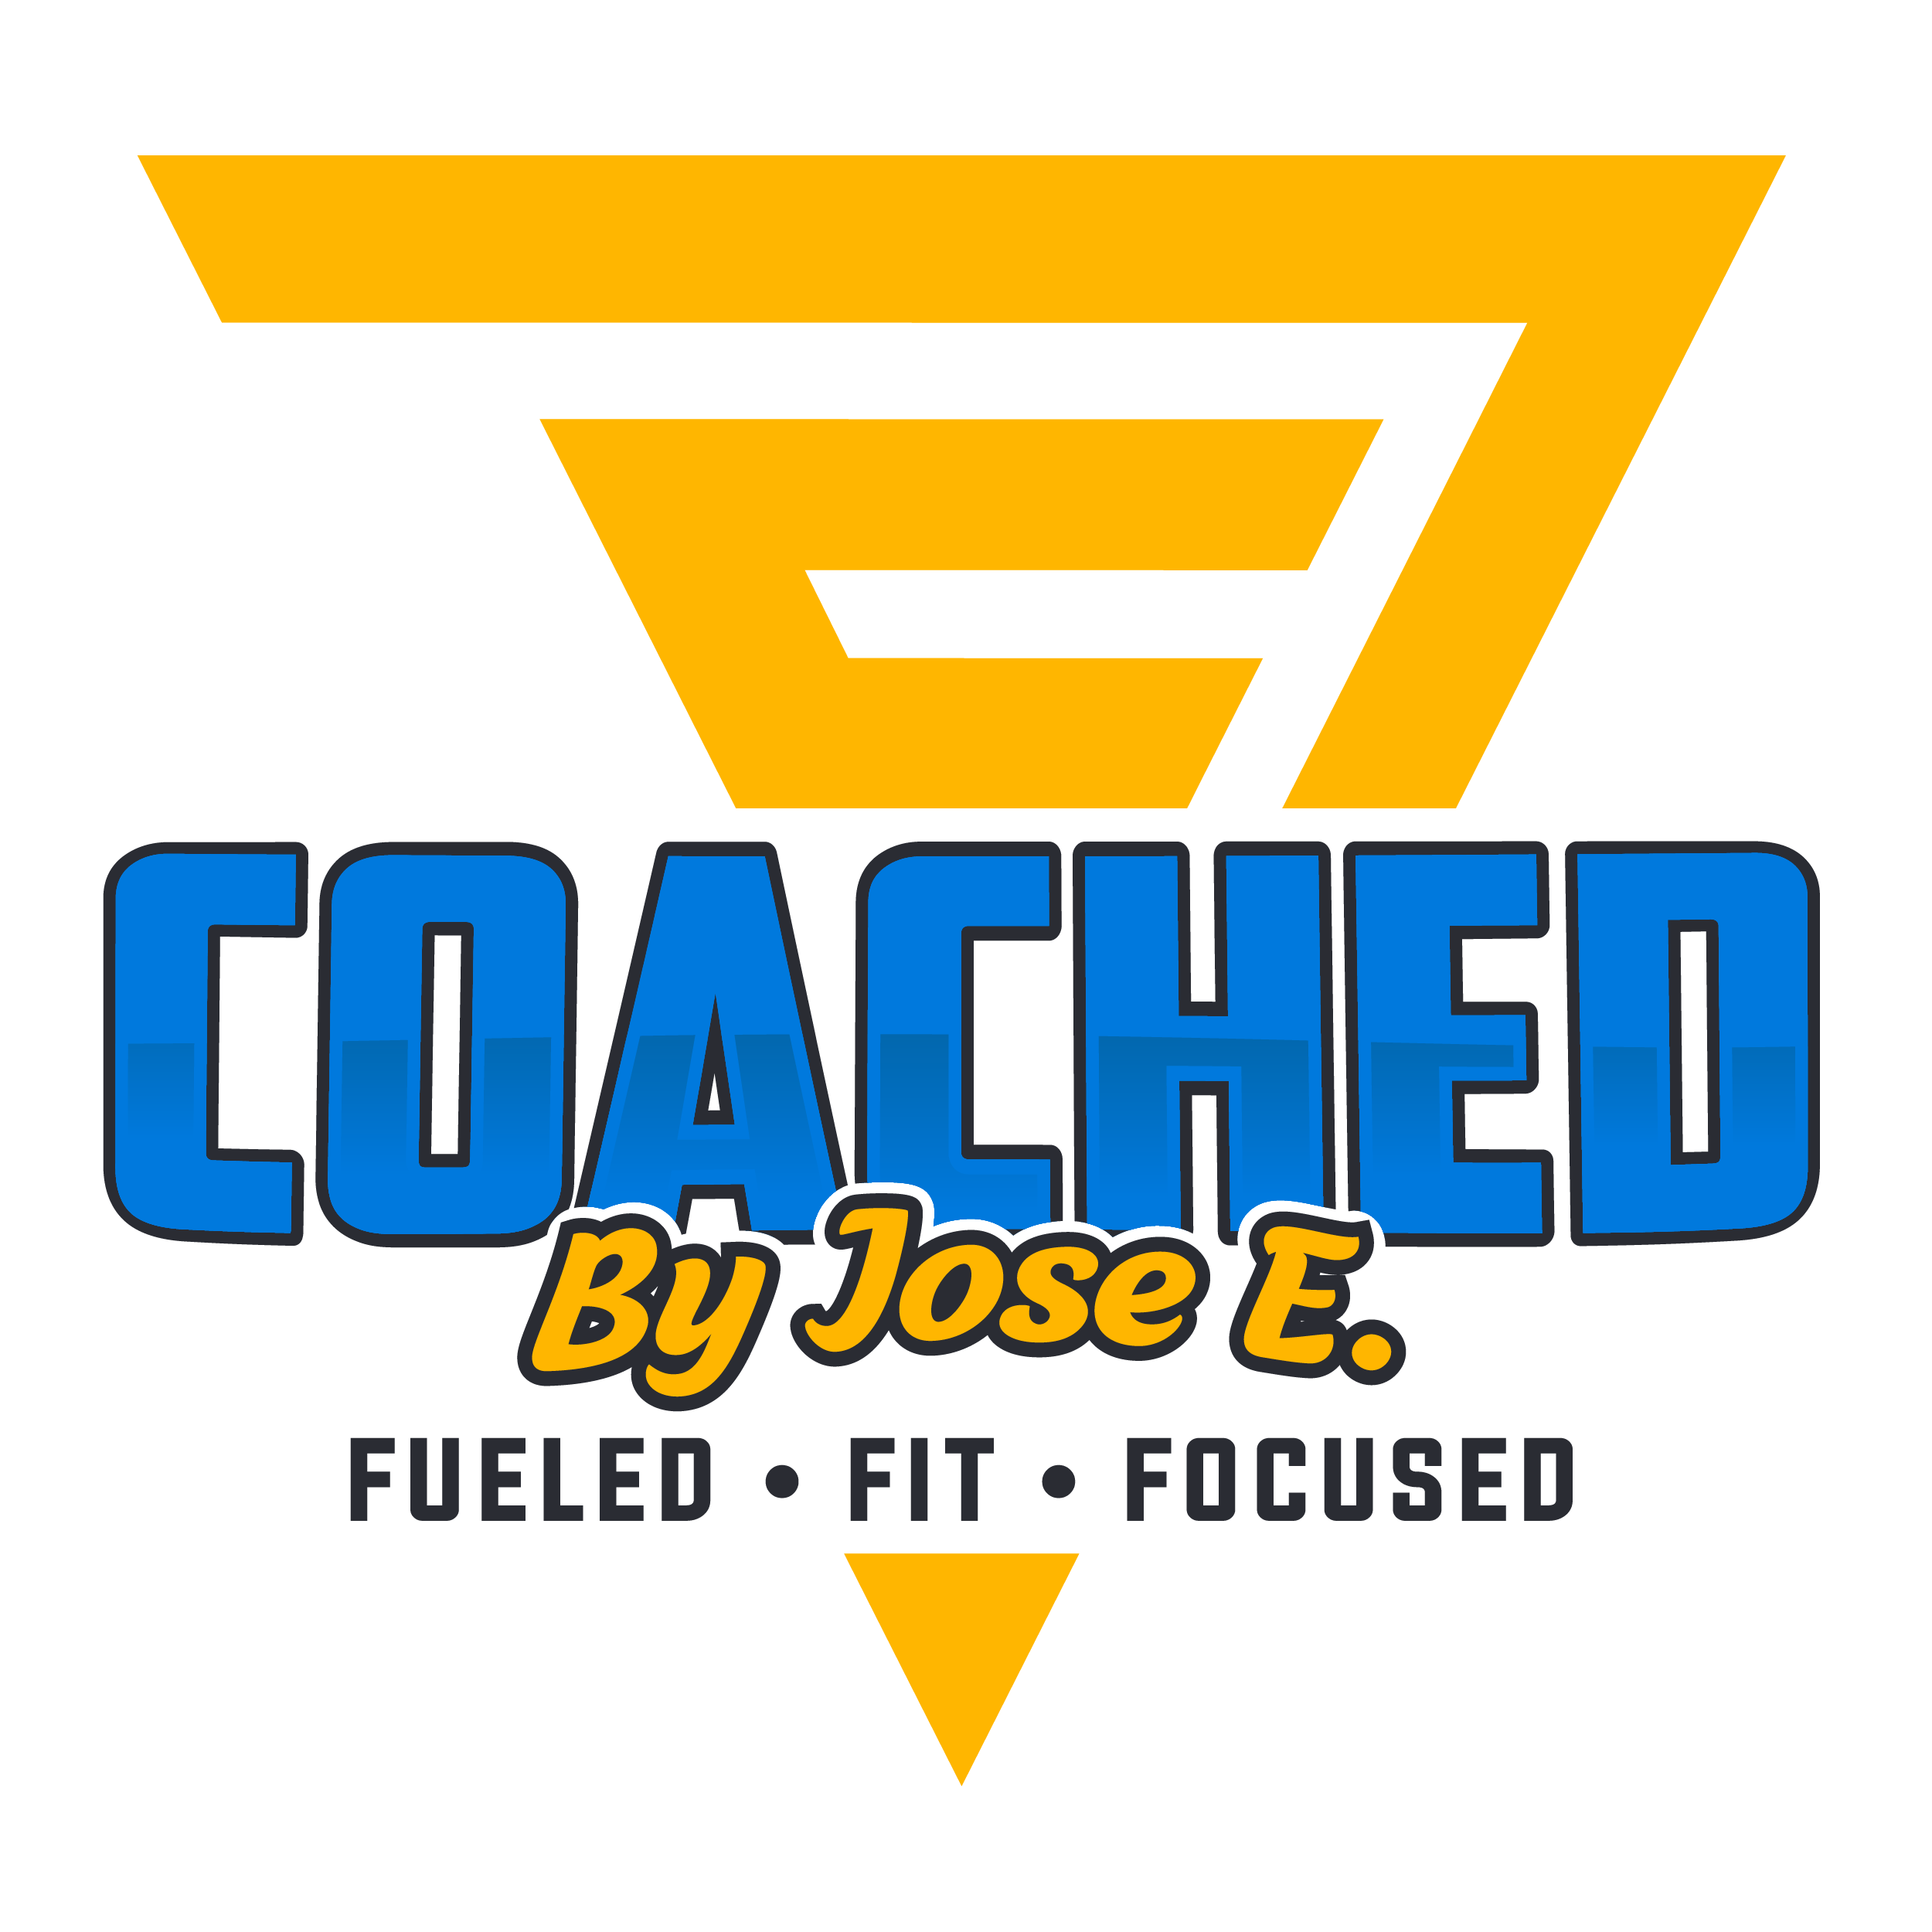 Coached by Jose